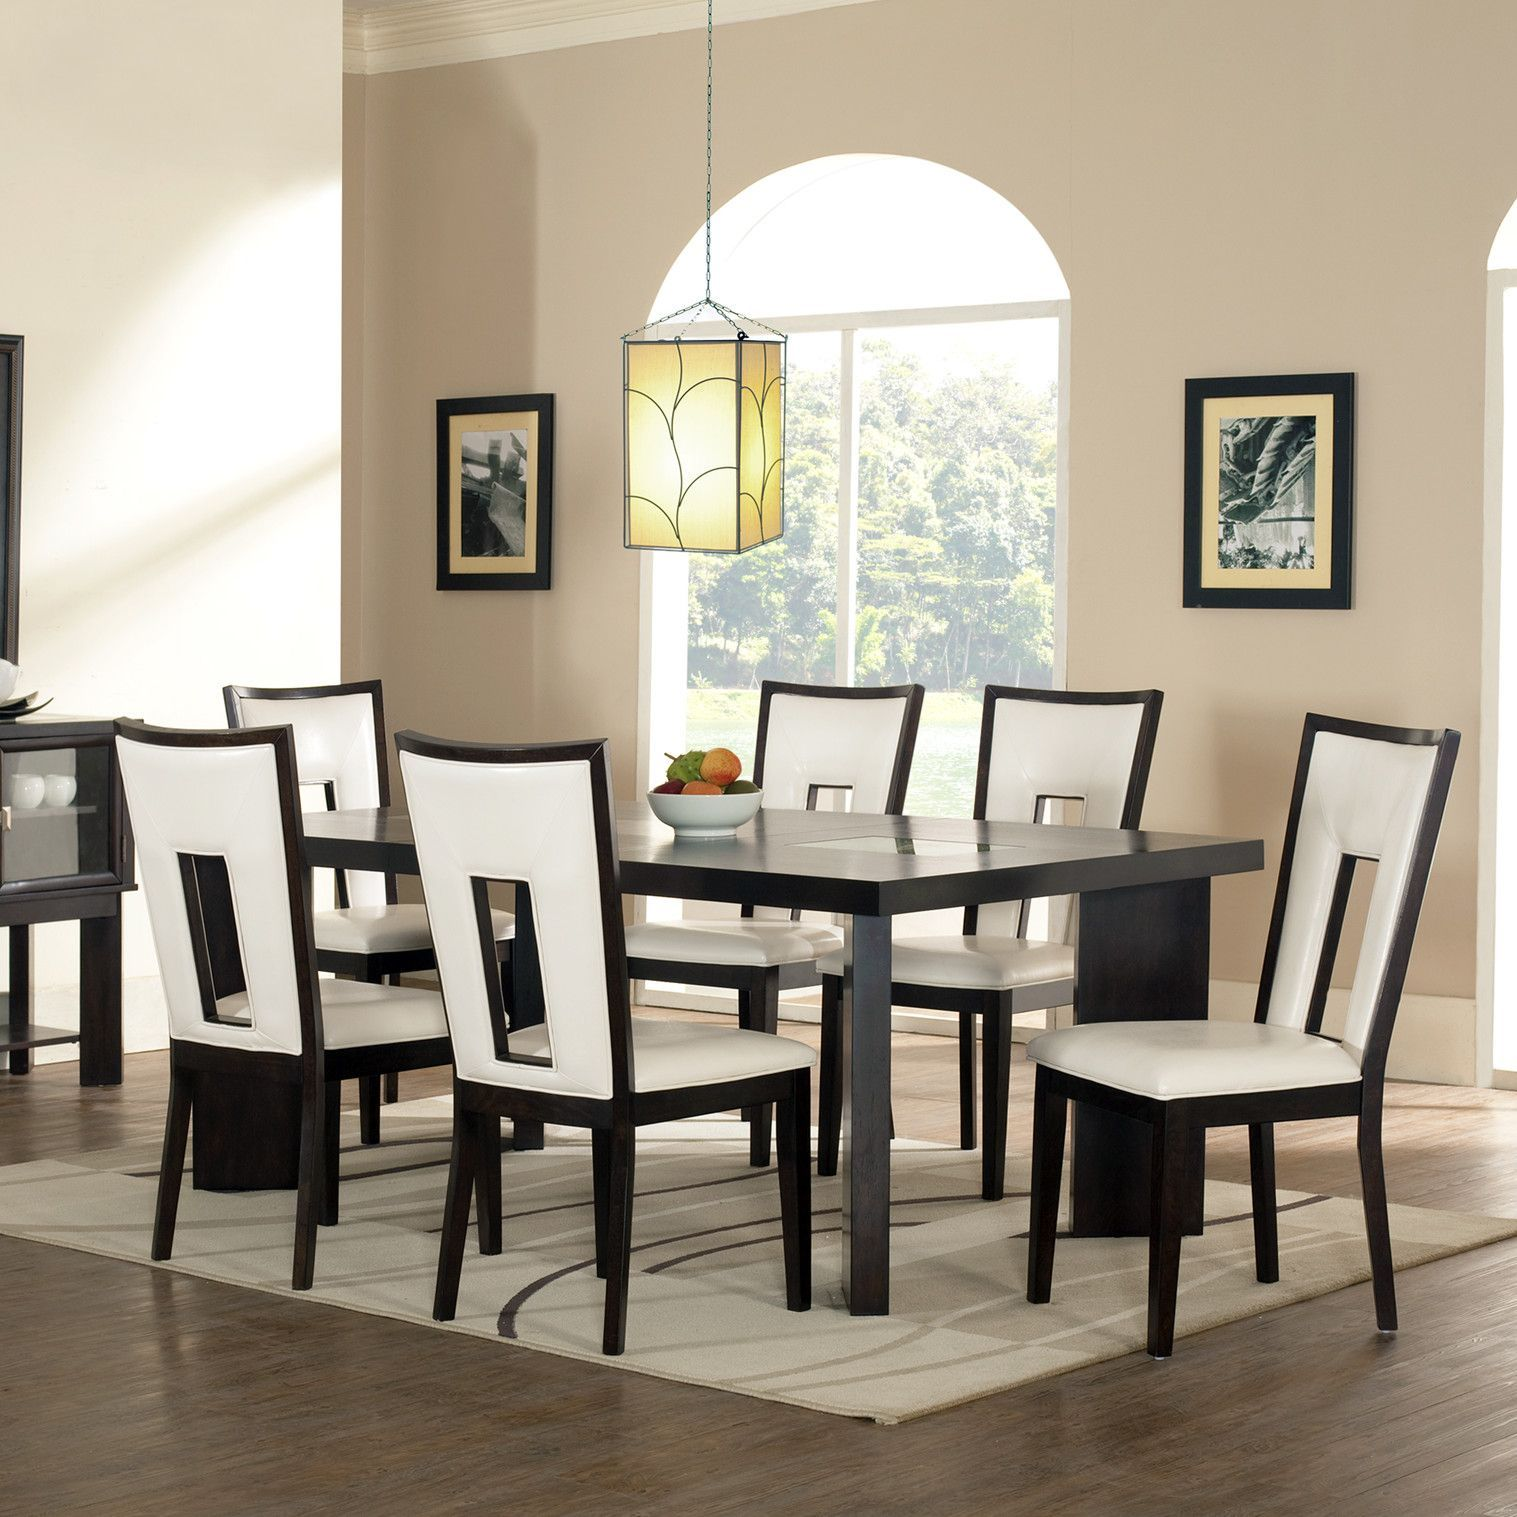 Explore Kitchen Dining Rooms, Dining Room Sets, And More!